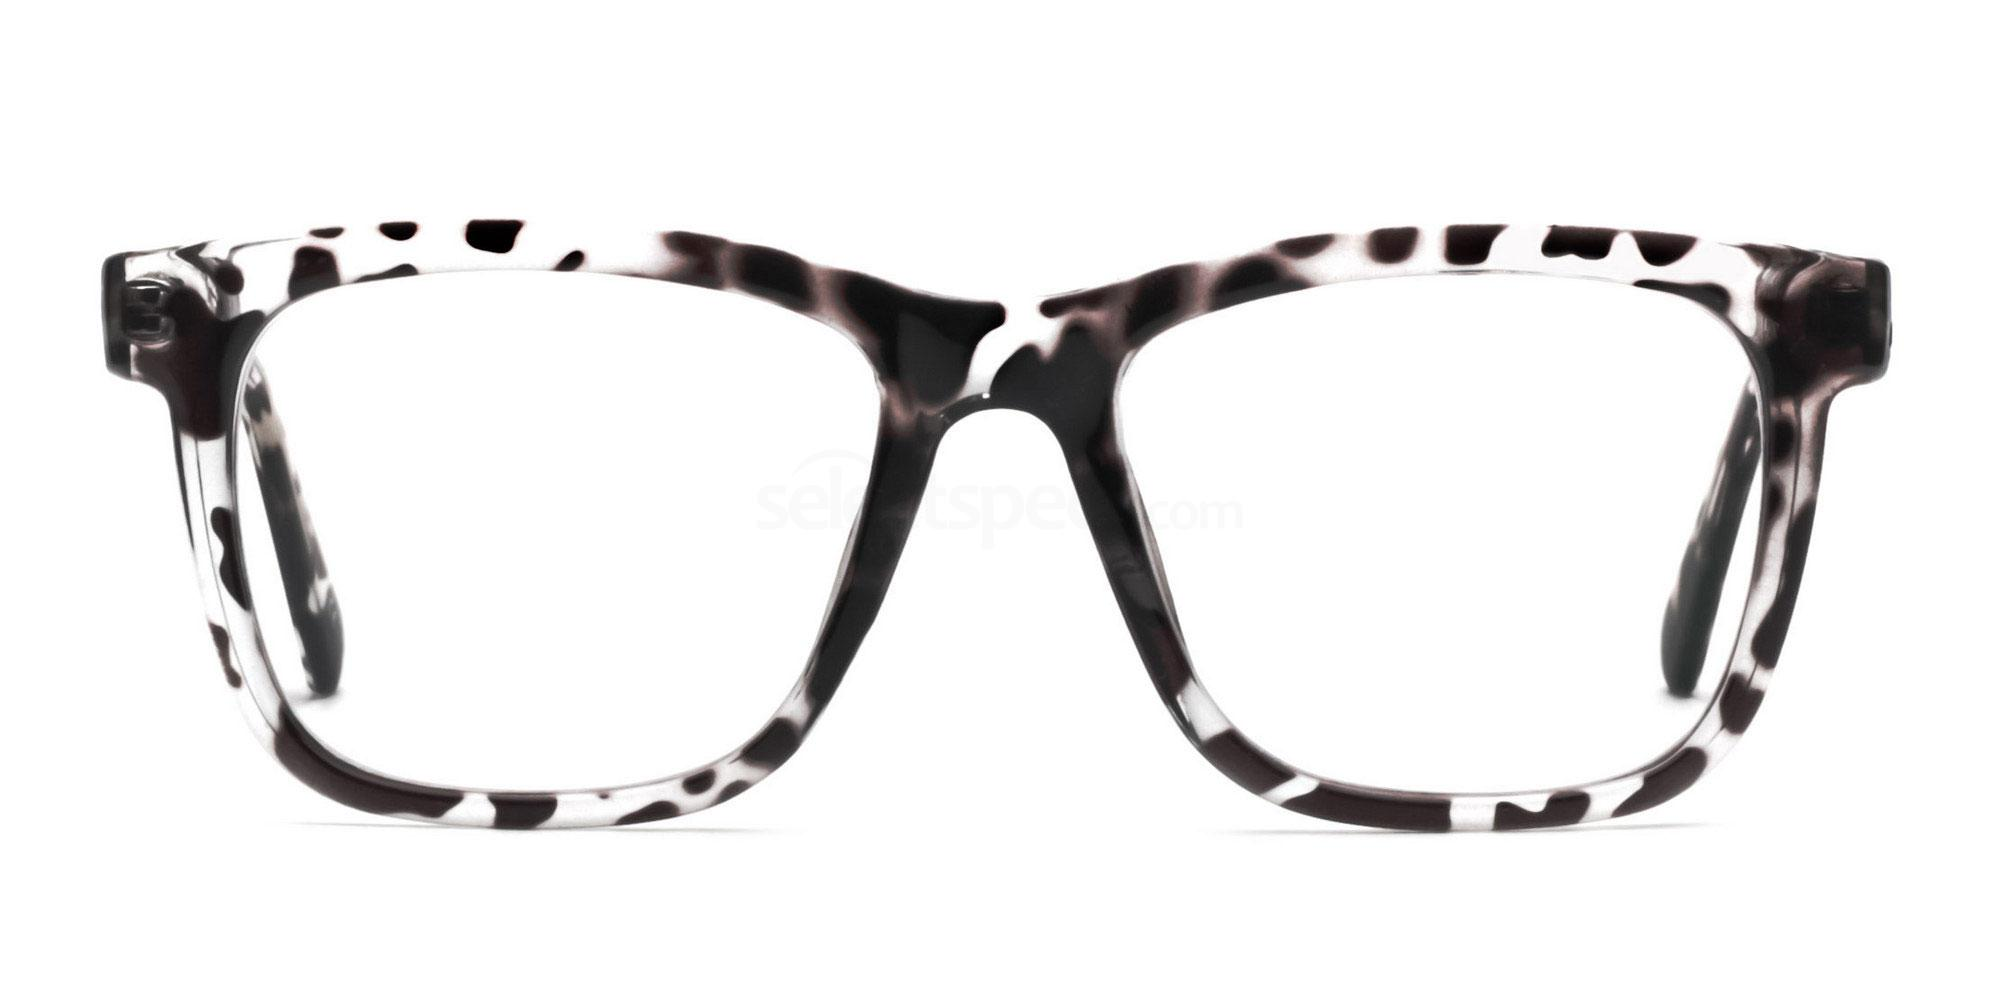 d075d76b61 Savannah Budget Glasses at SelectSpecs  Tried   Tested by Our ...